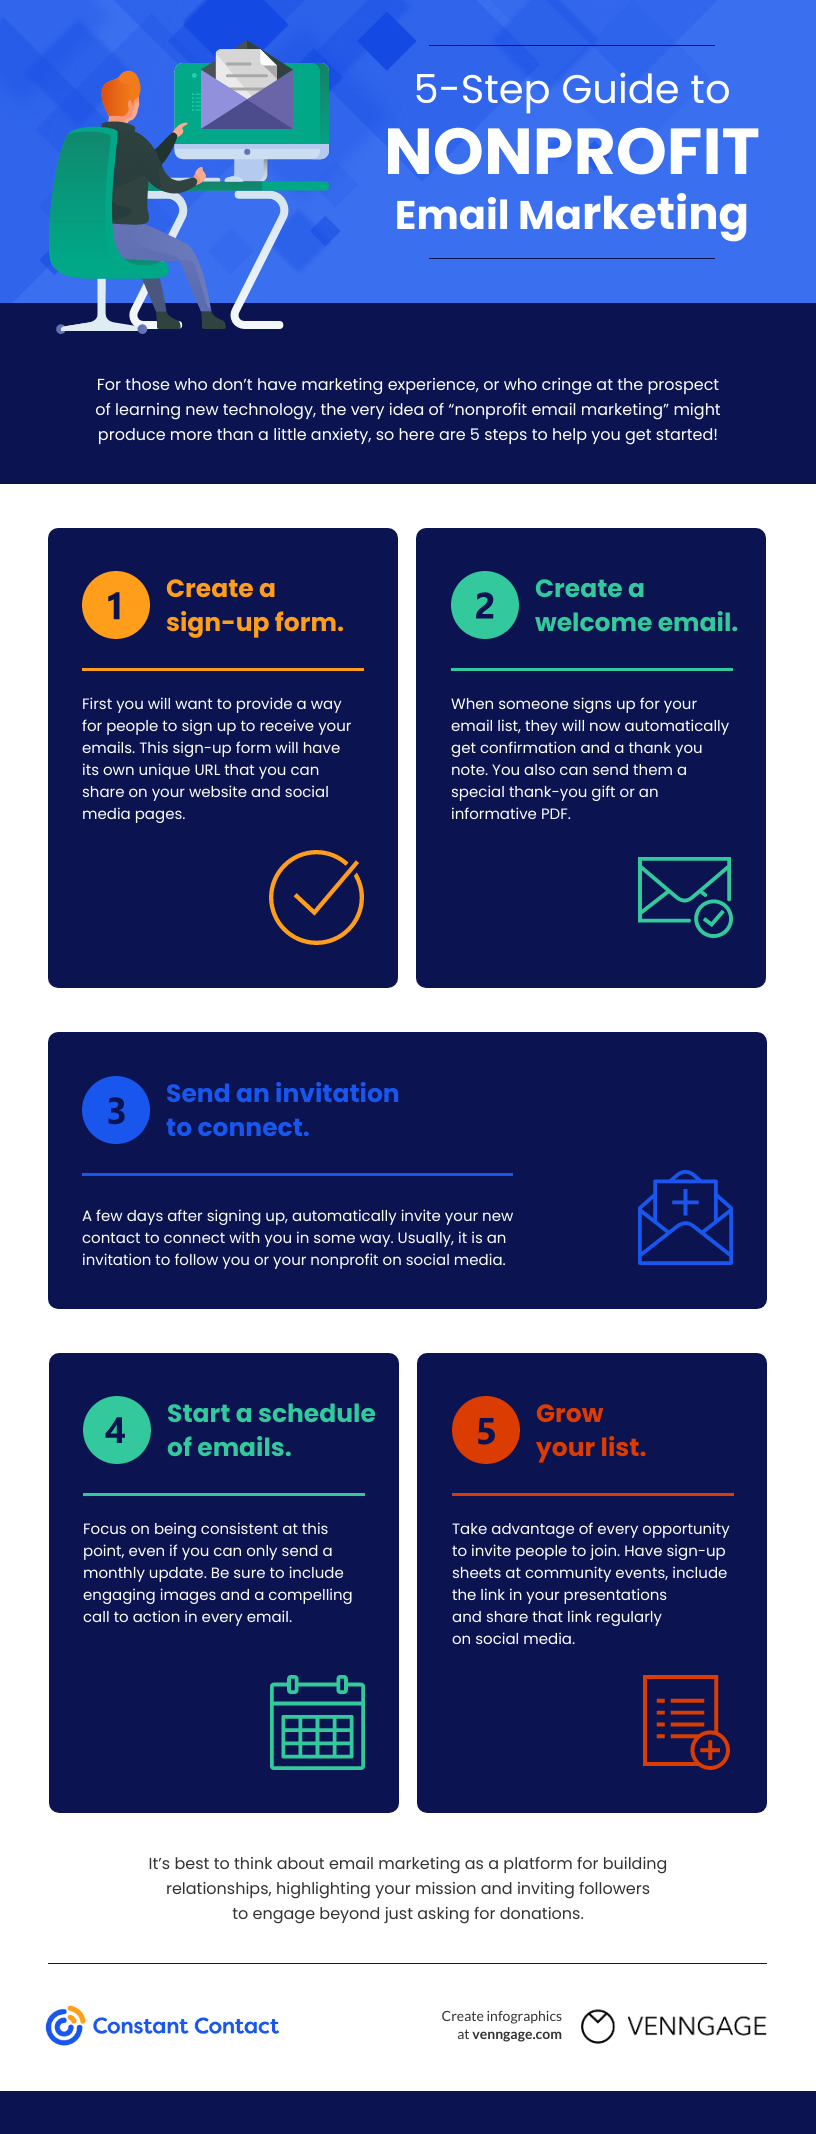 5-step guide to nonprofit email marketing